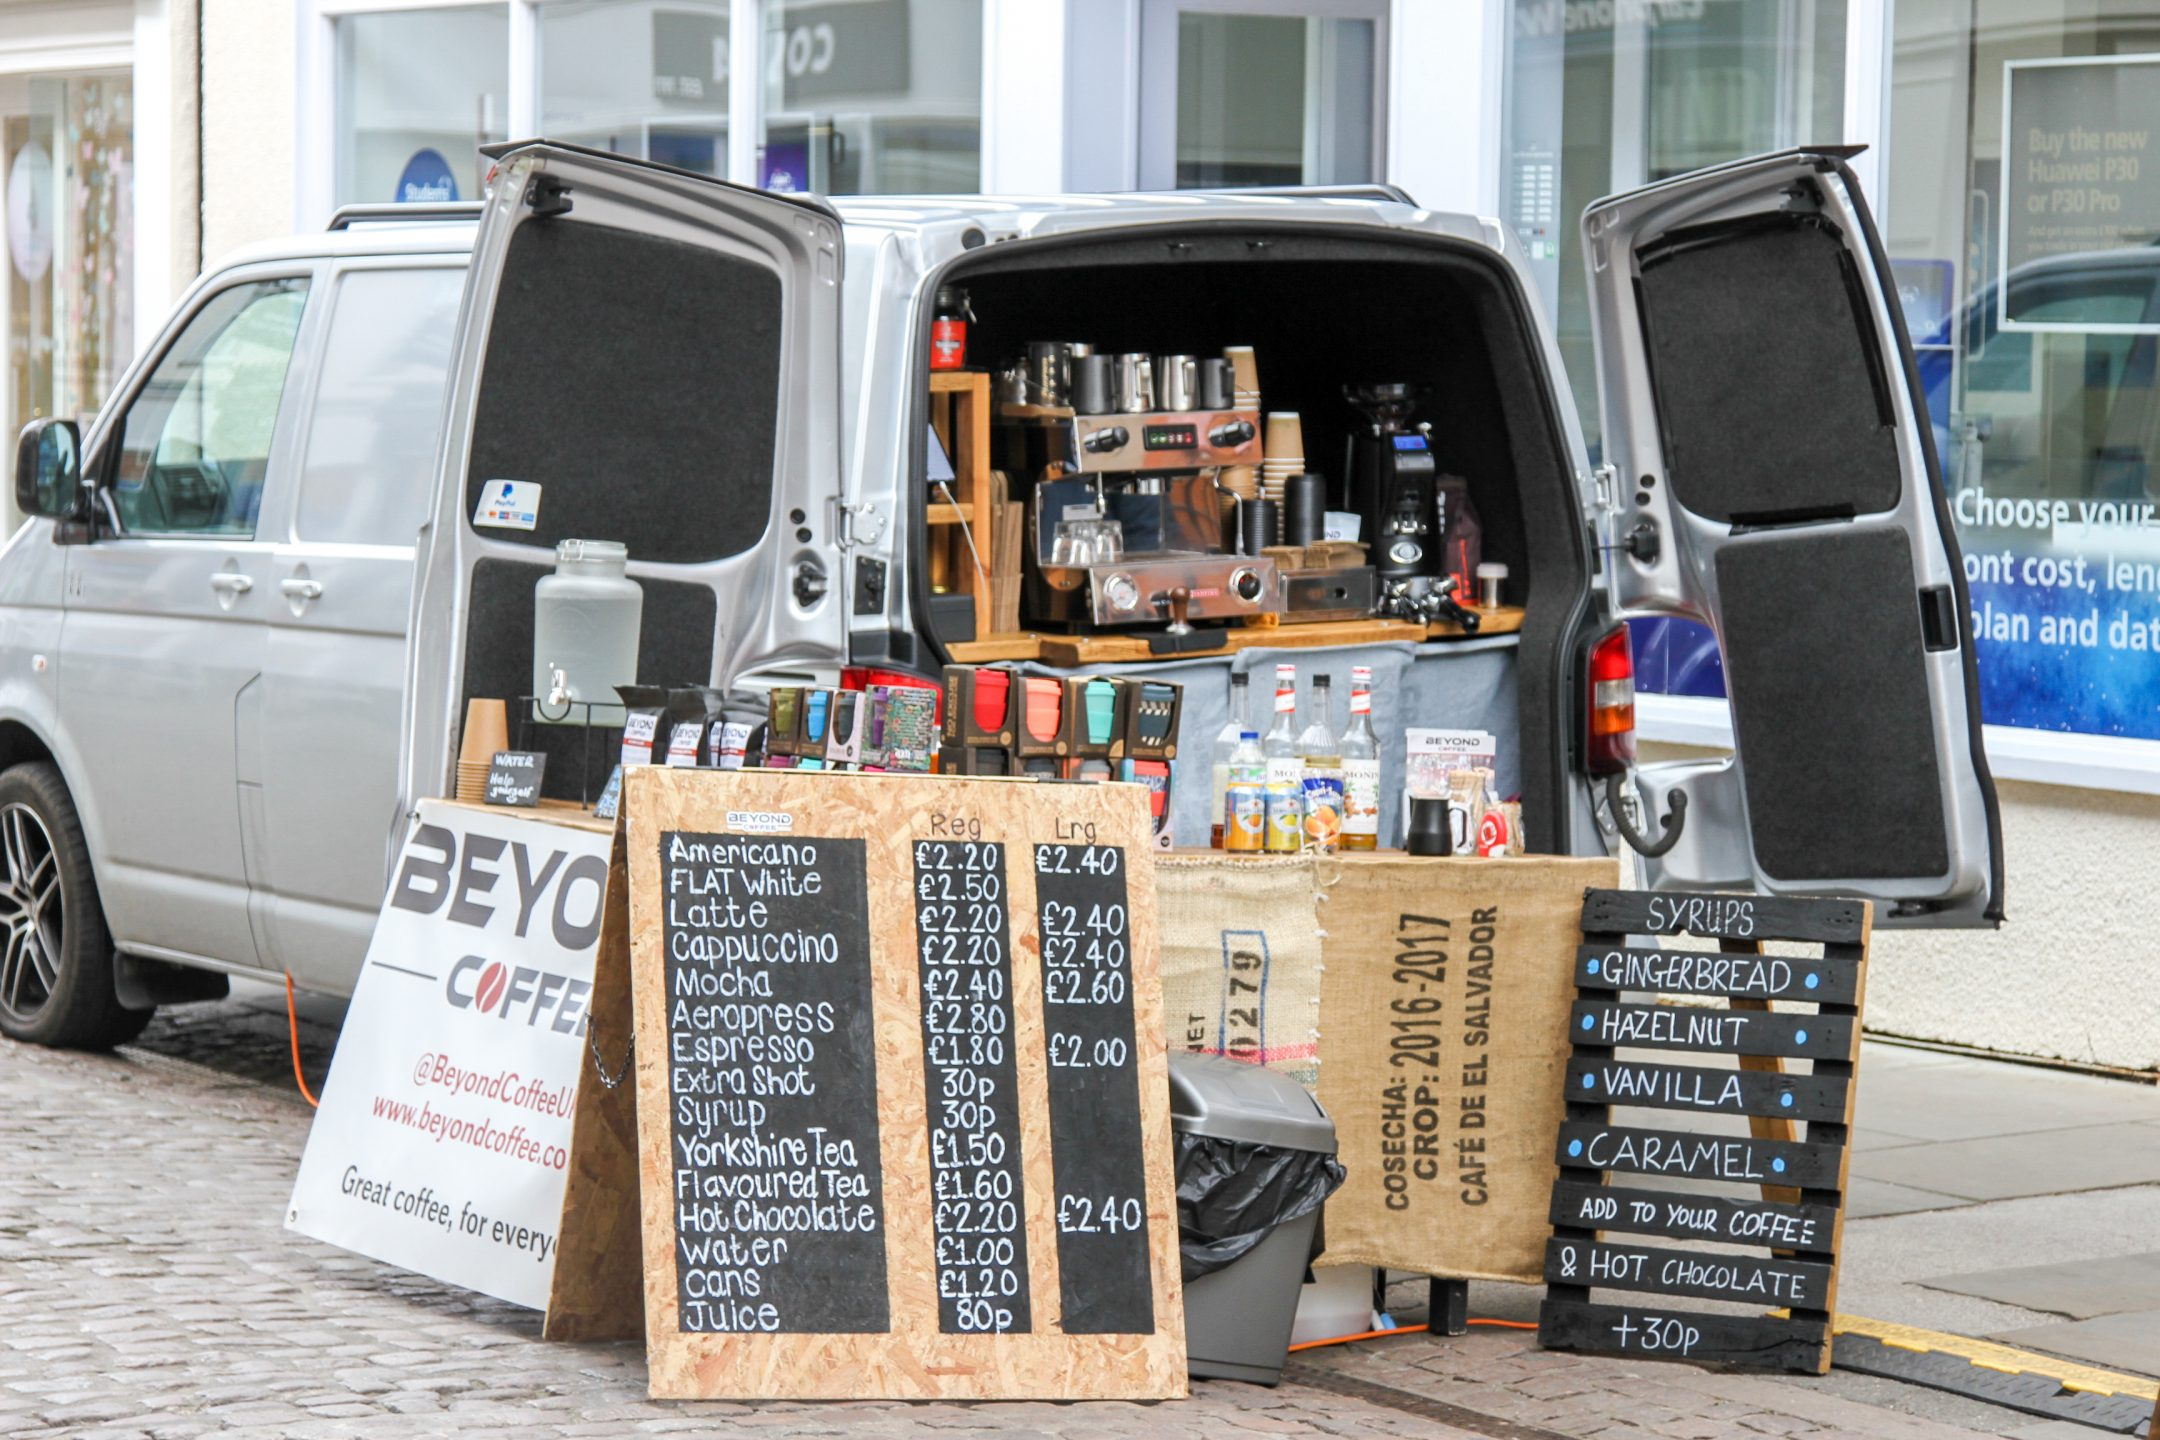 Vehicle, mobile, coffee, van, beyondcoffee